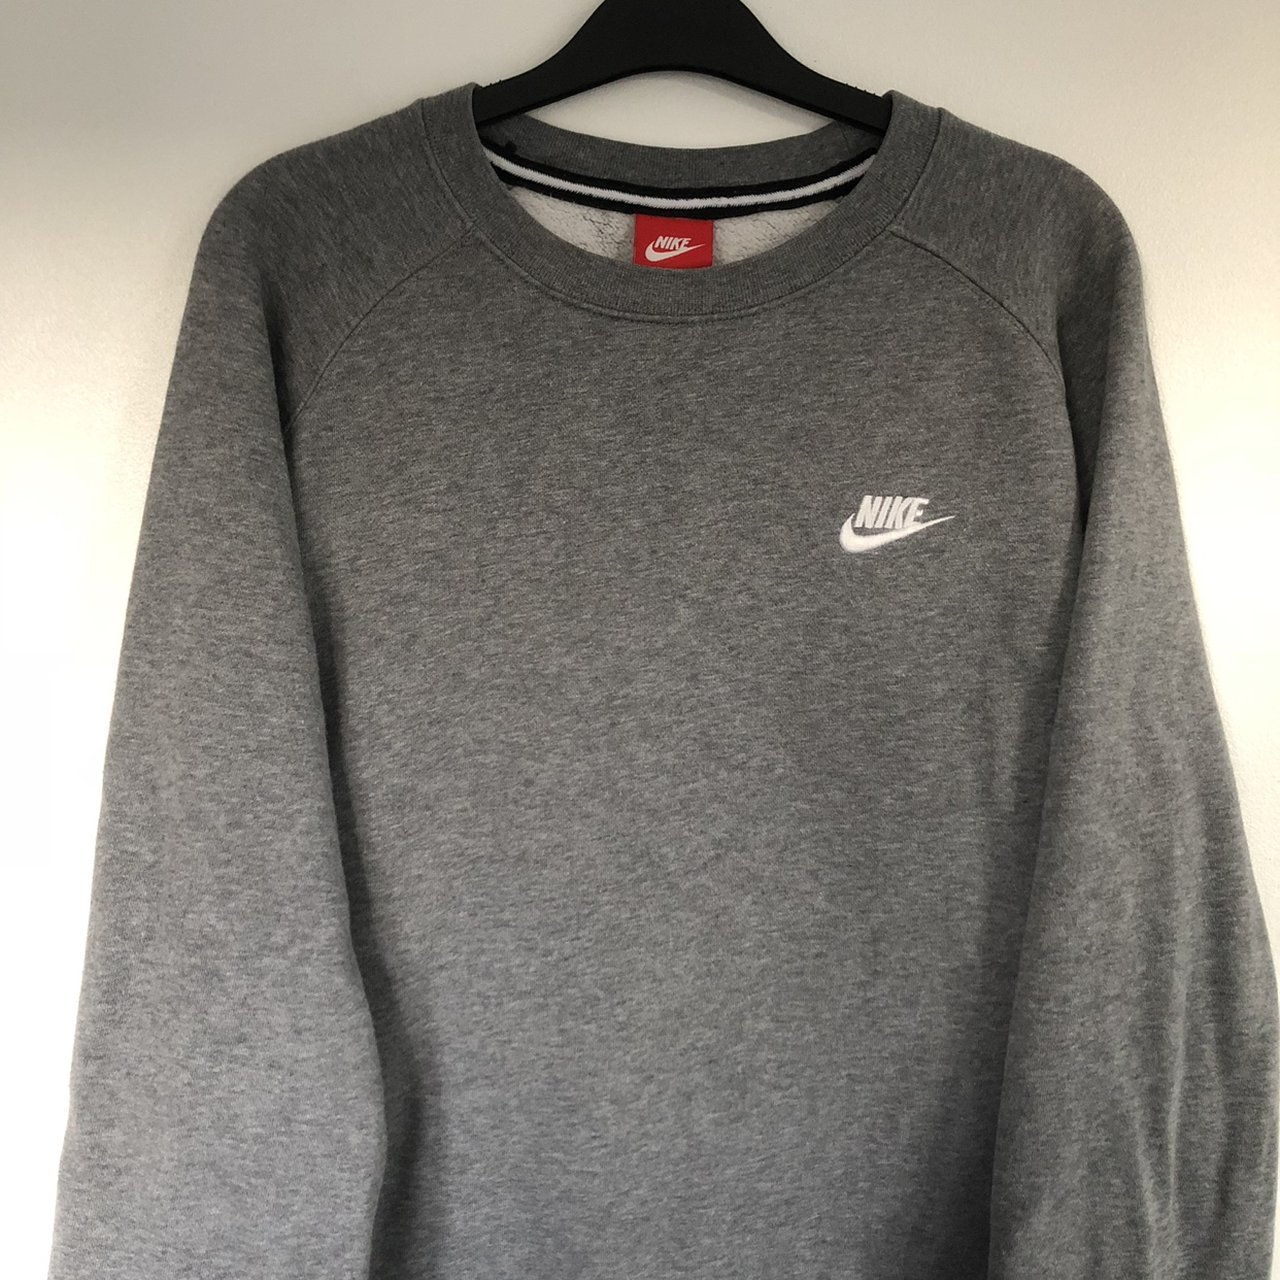 c9fc4c6e21b1 PRICE DROP  Grey Nike sweater. Great condition! embroider L - Depop